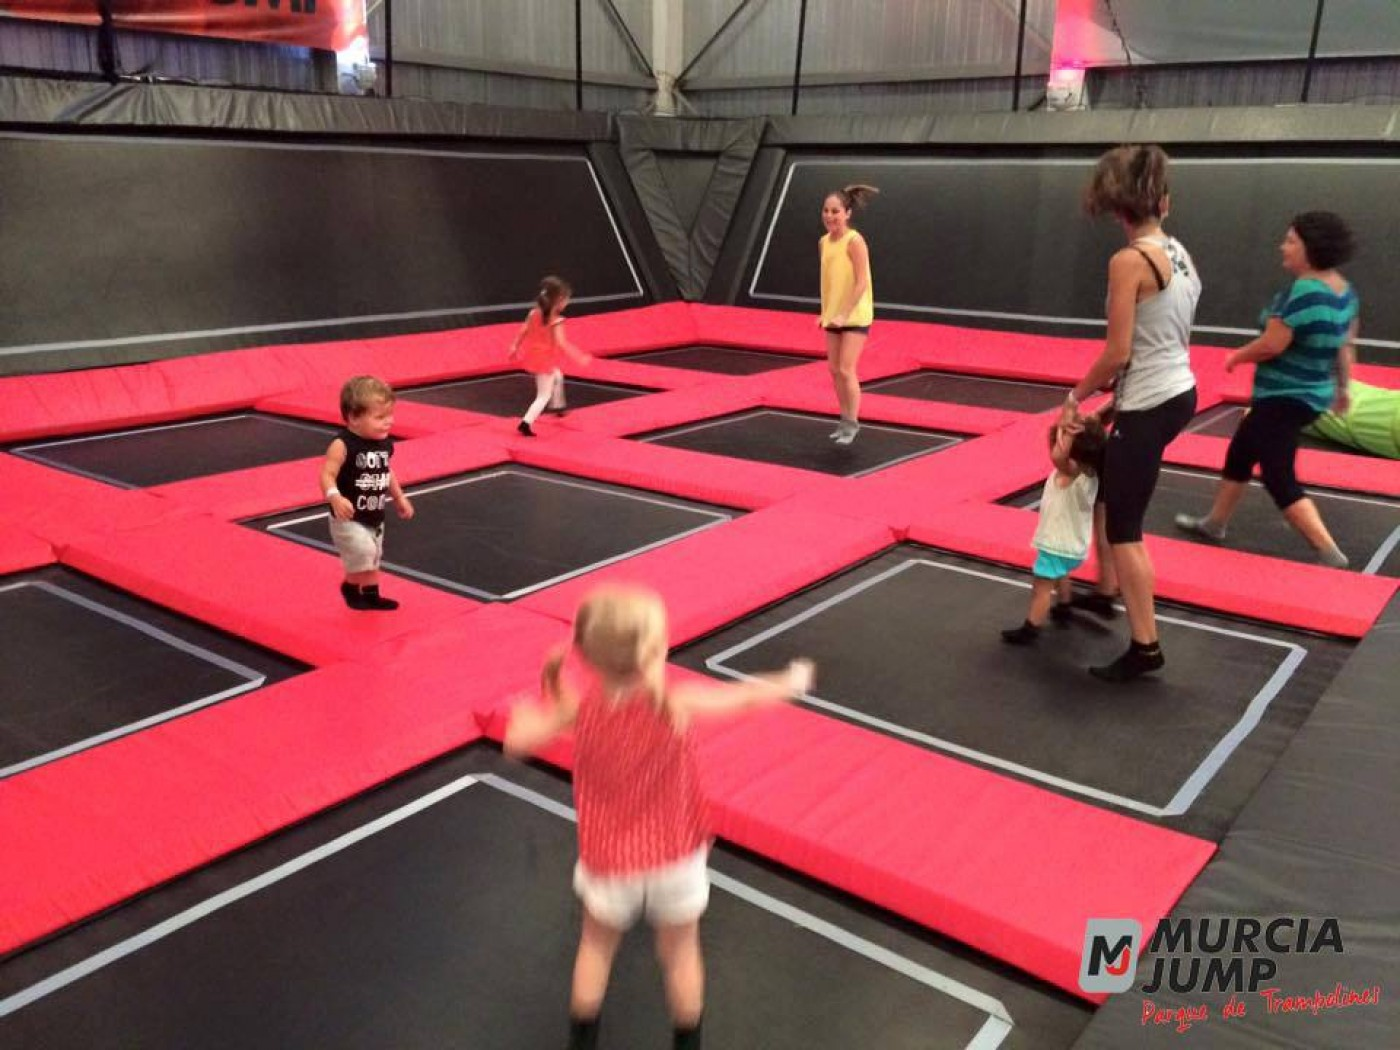 Murcia Jump, trampolining fun for all the family in the outskirts of Murcia